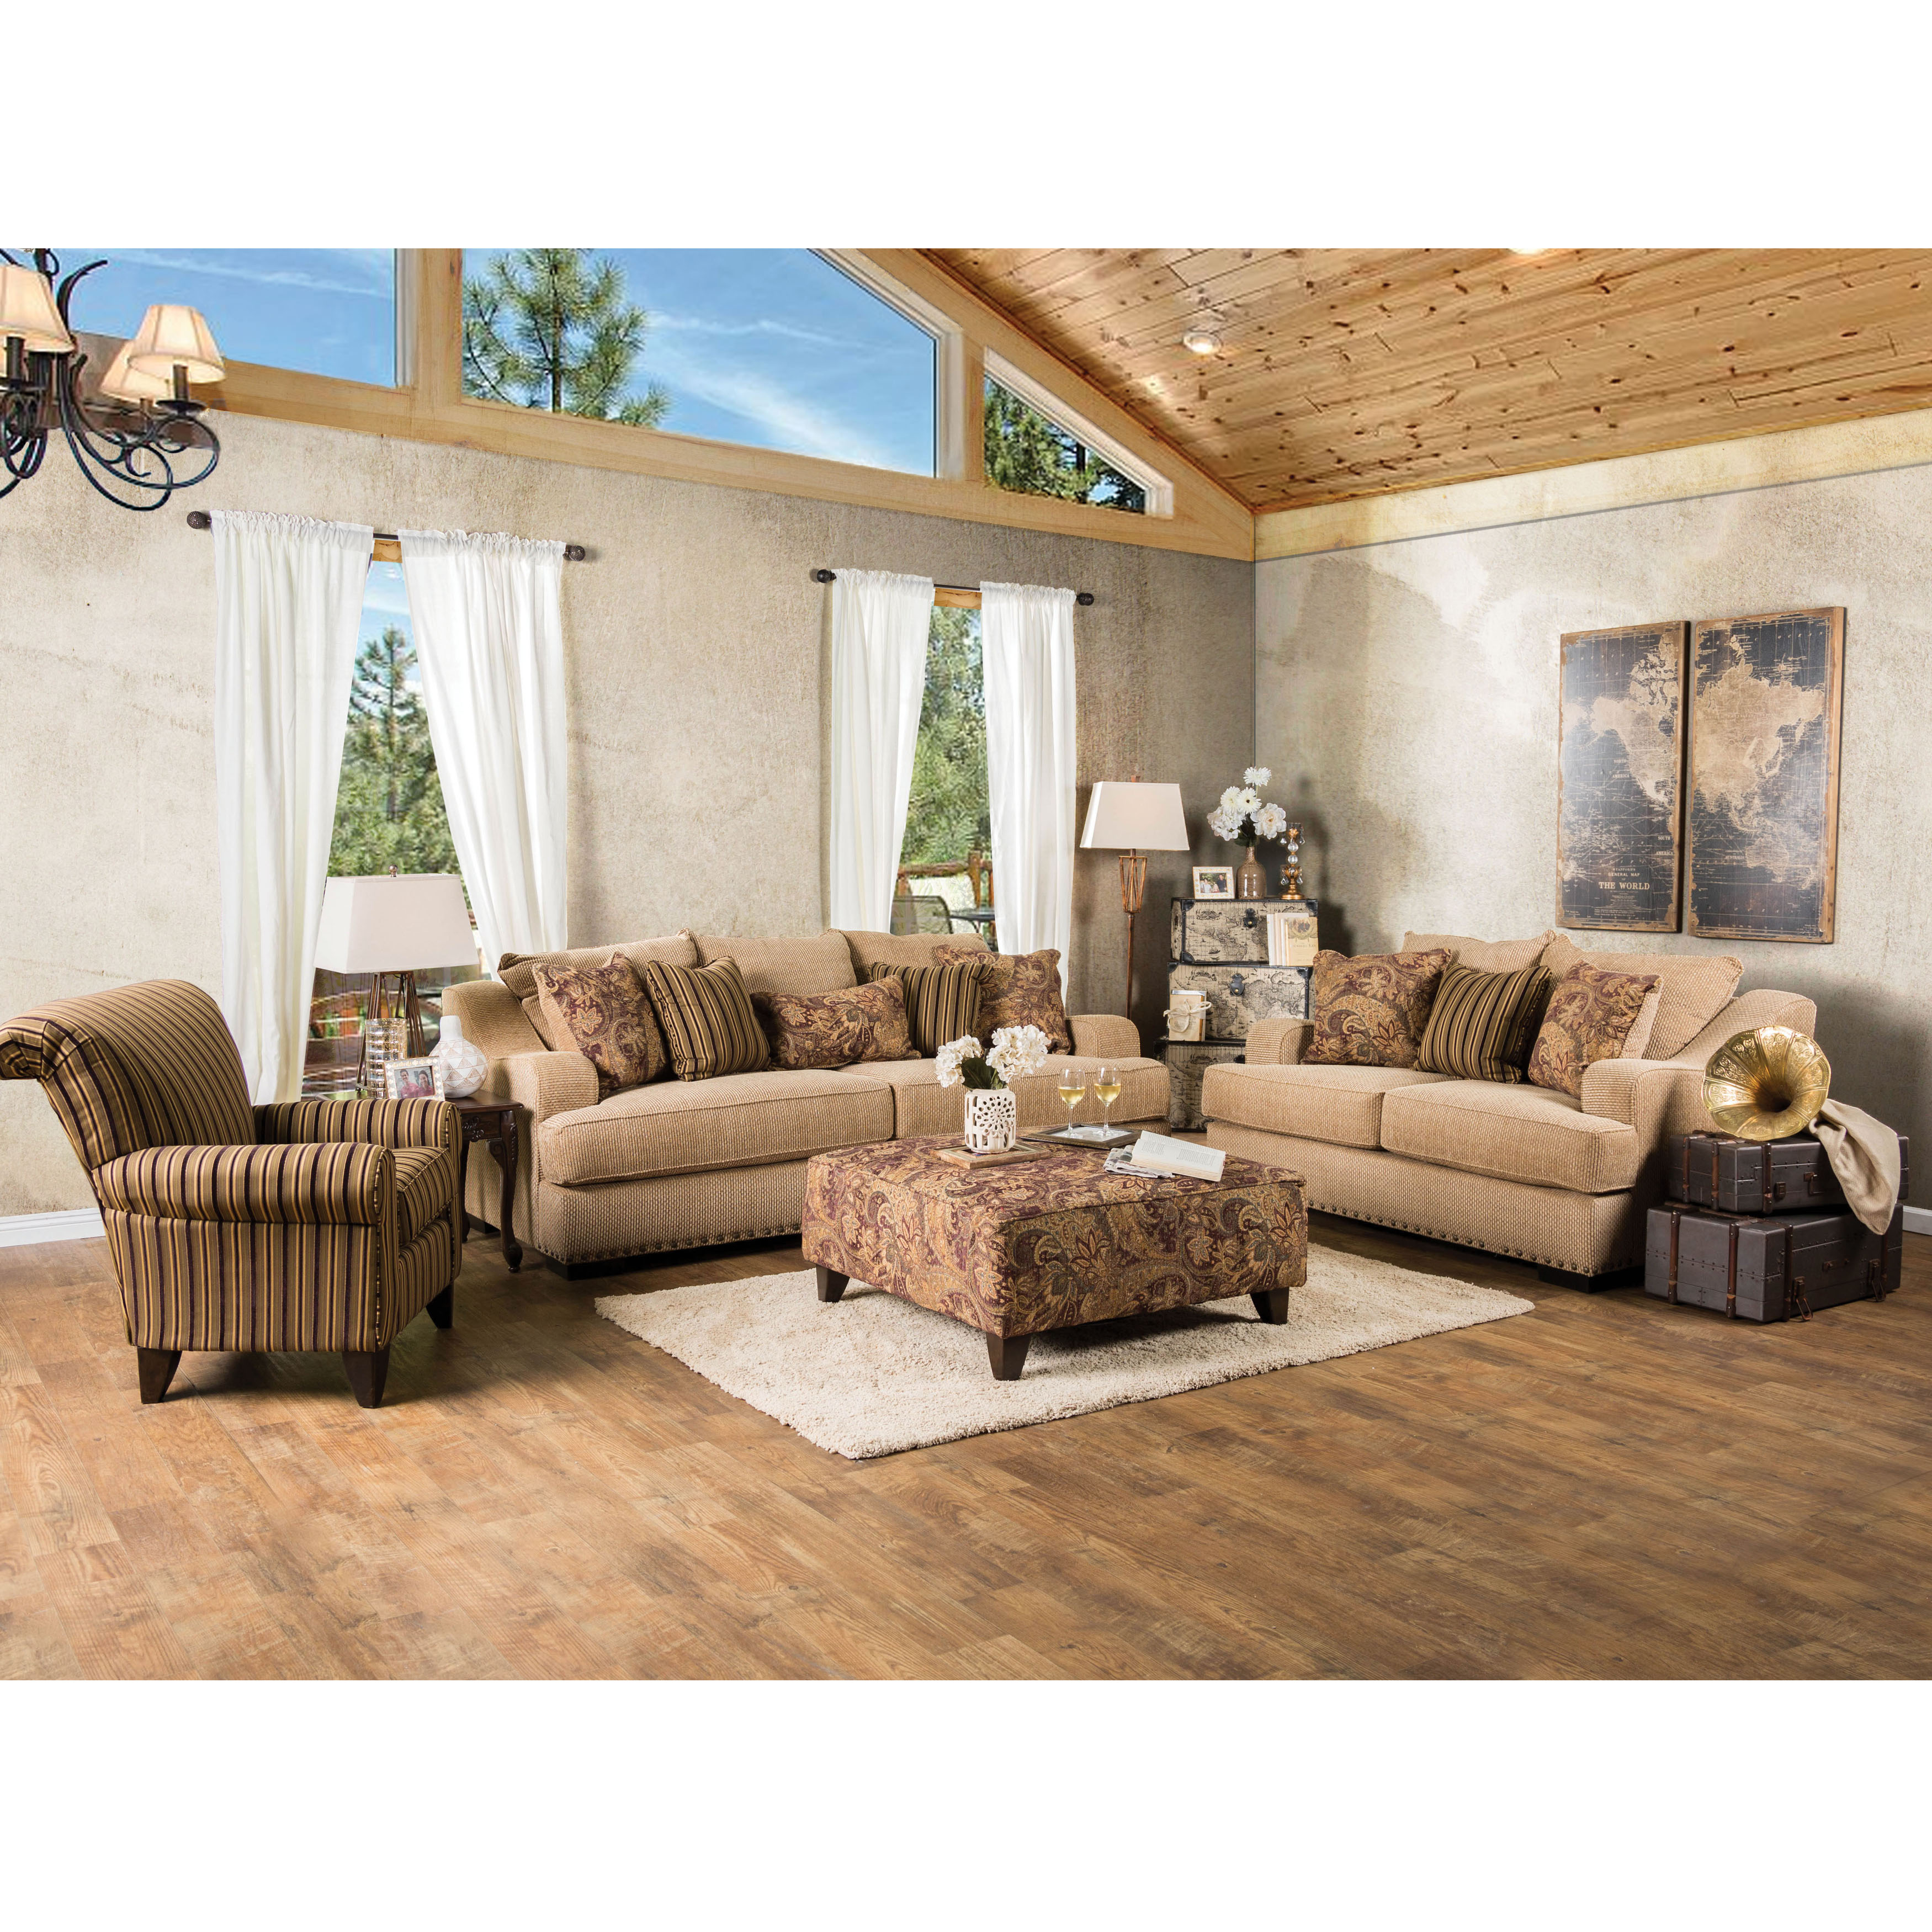 Furniture of America Wallys Traditional Brown Striped 3-Piece Sofa Set